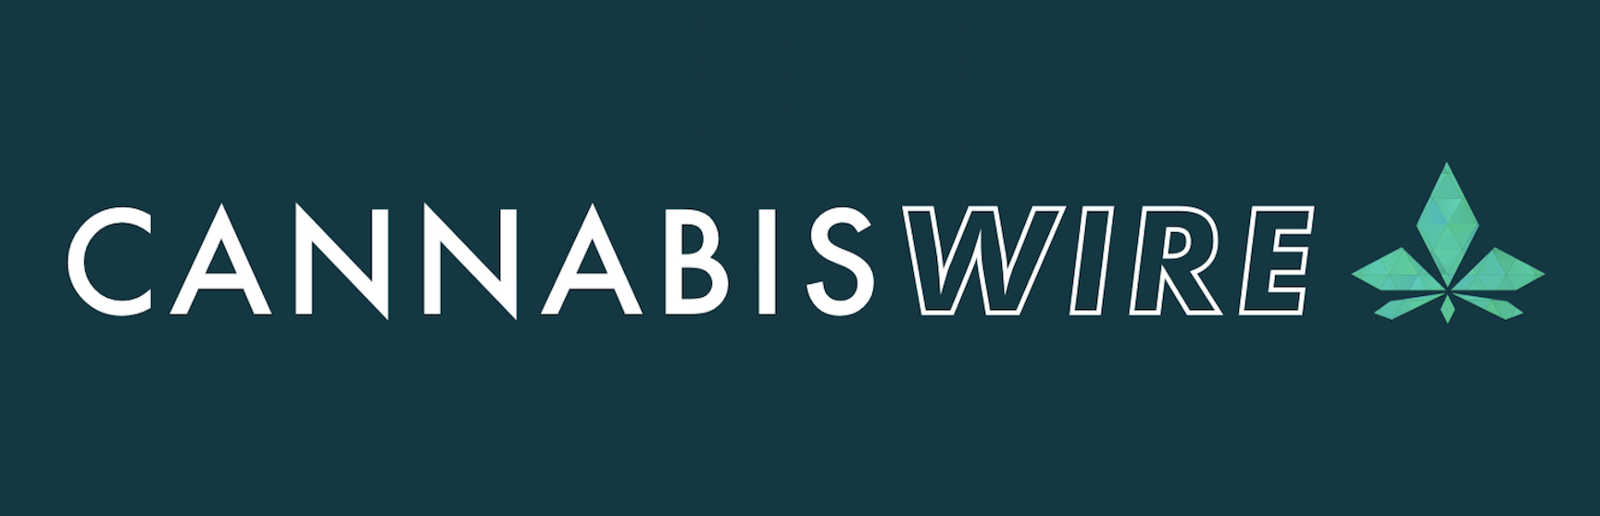 Cannabis Wire | A New Standard for Covering a Multi-Billion Dollar Industry